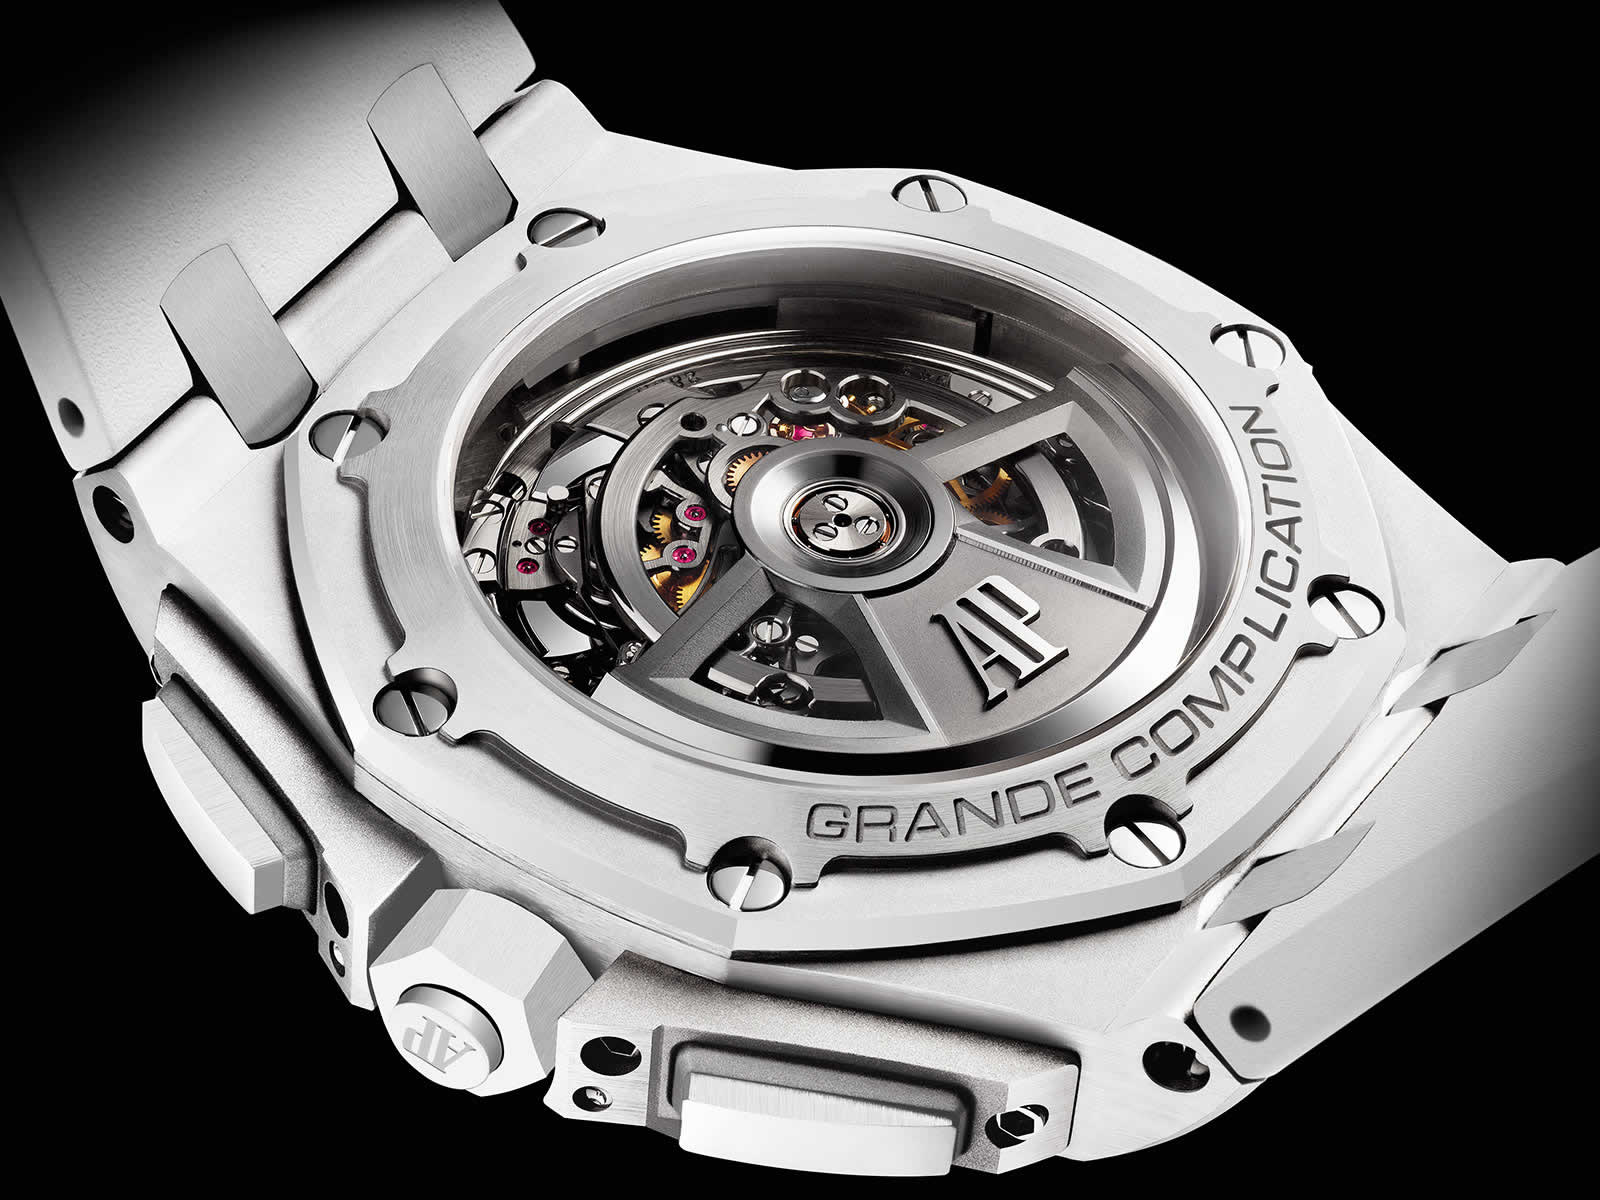 26582cb-oo-a010ca-01-audemars-piguet-royal-oak-offshore-grande-complication-2.jpg